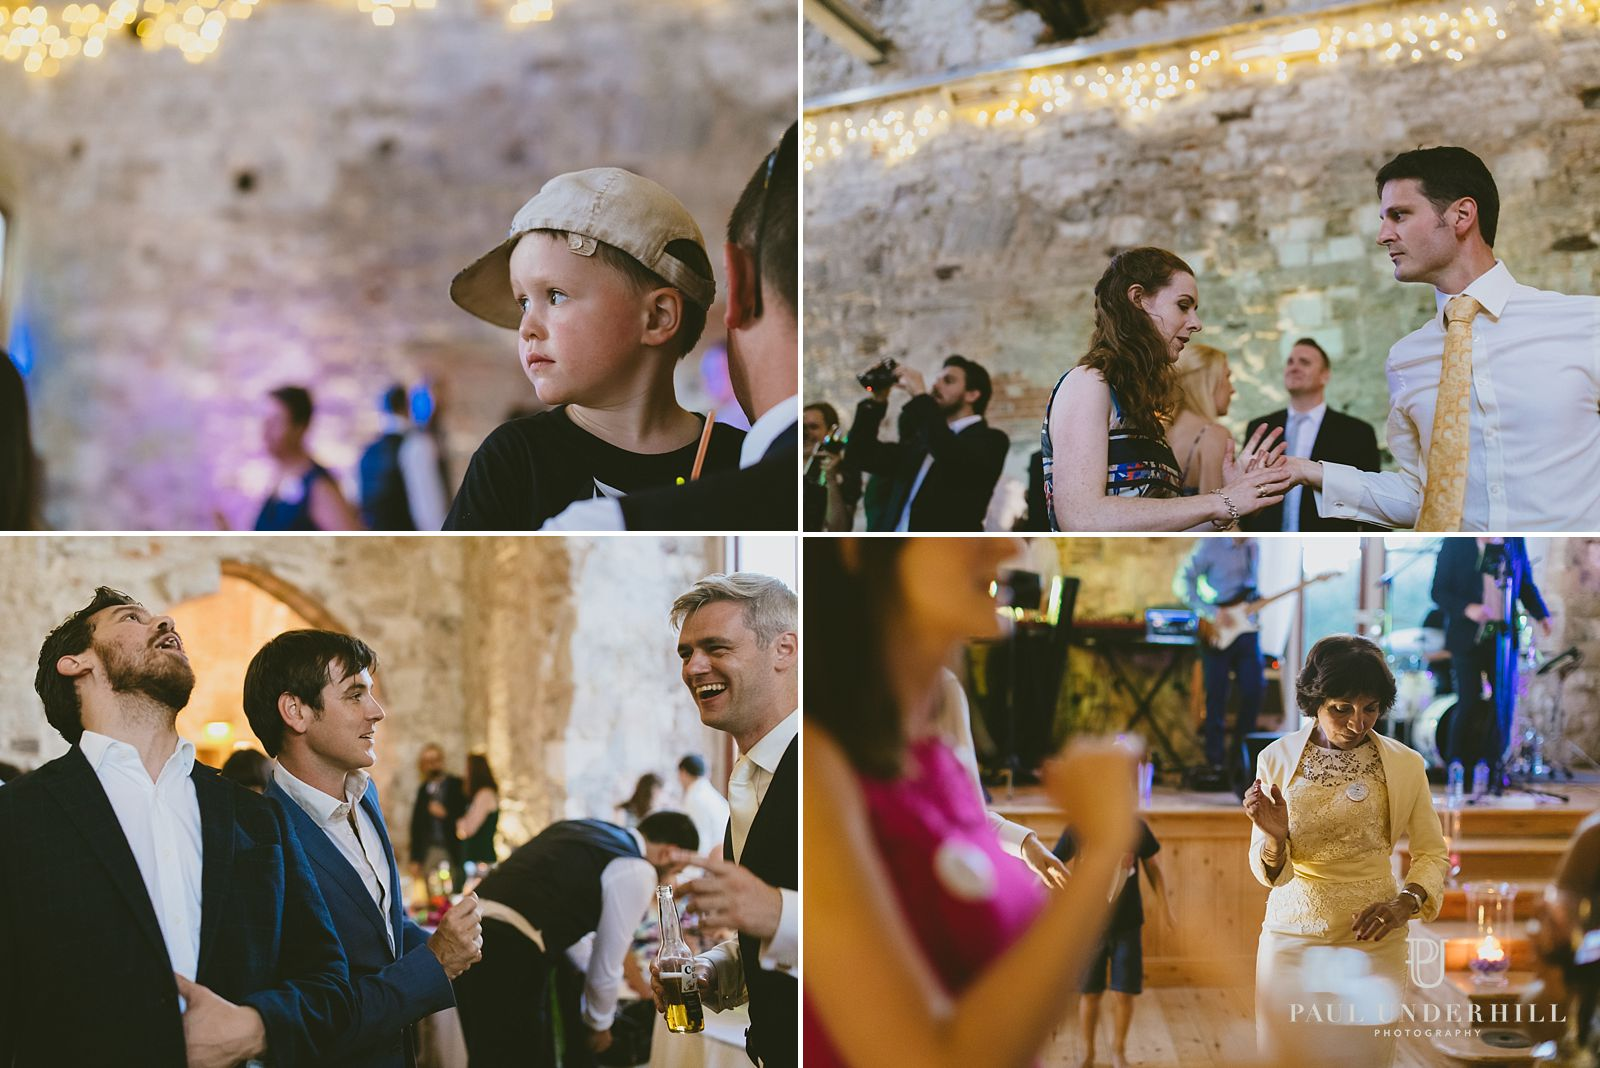 reportage-photography-wedding-guests-dancing